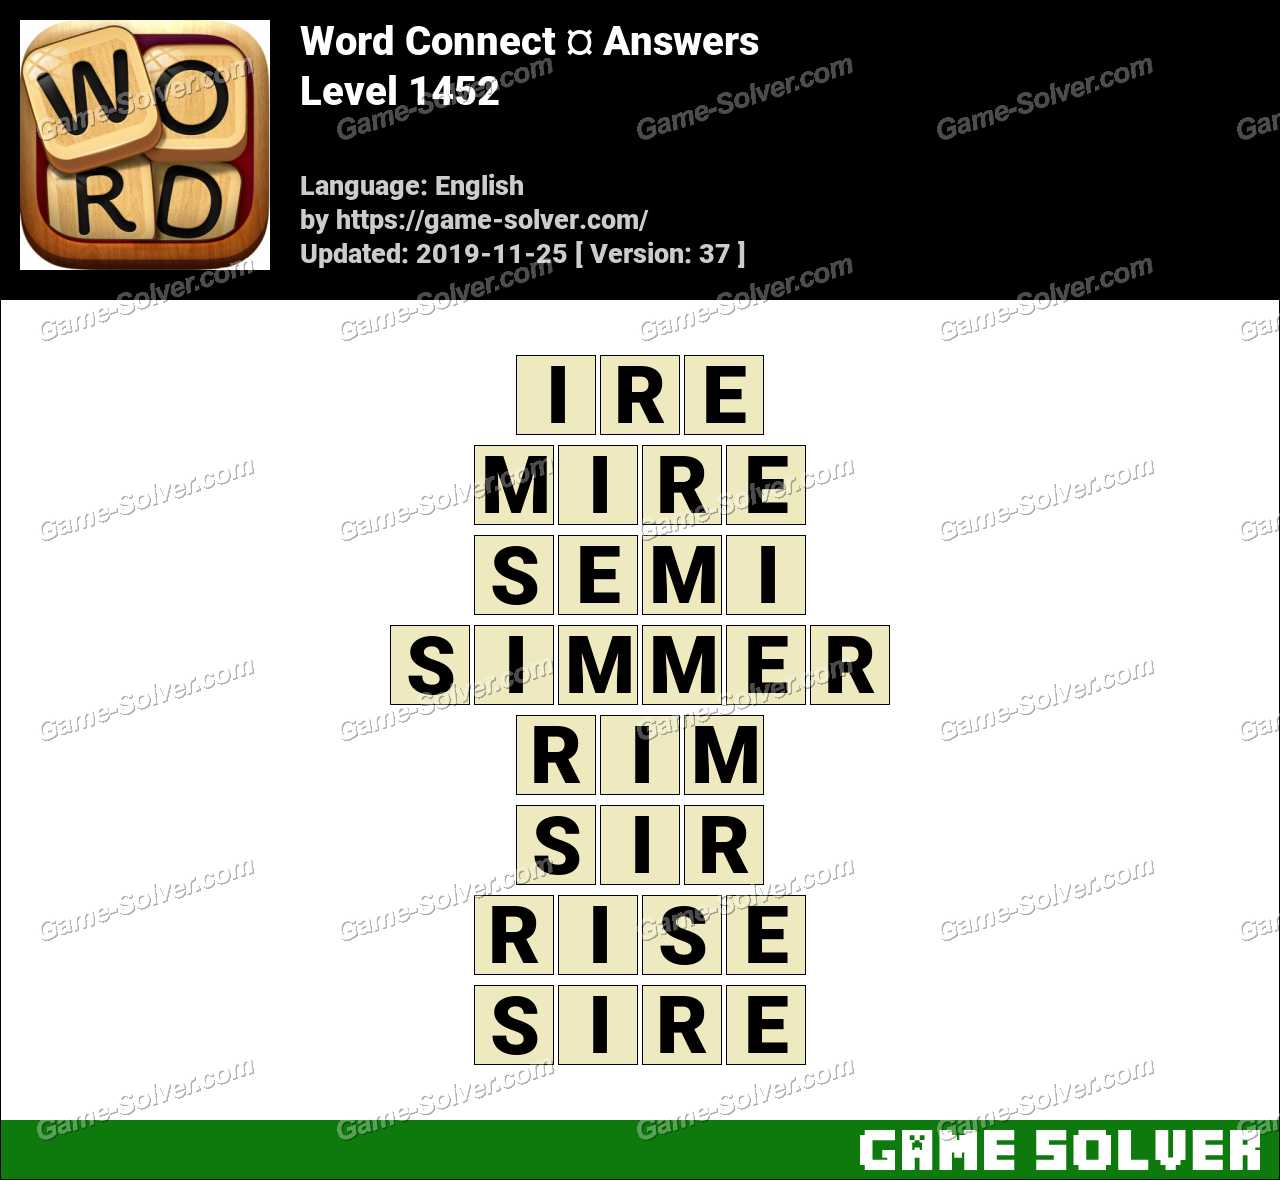 Word Connect Level 1452 Answers